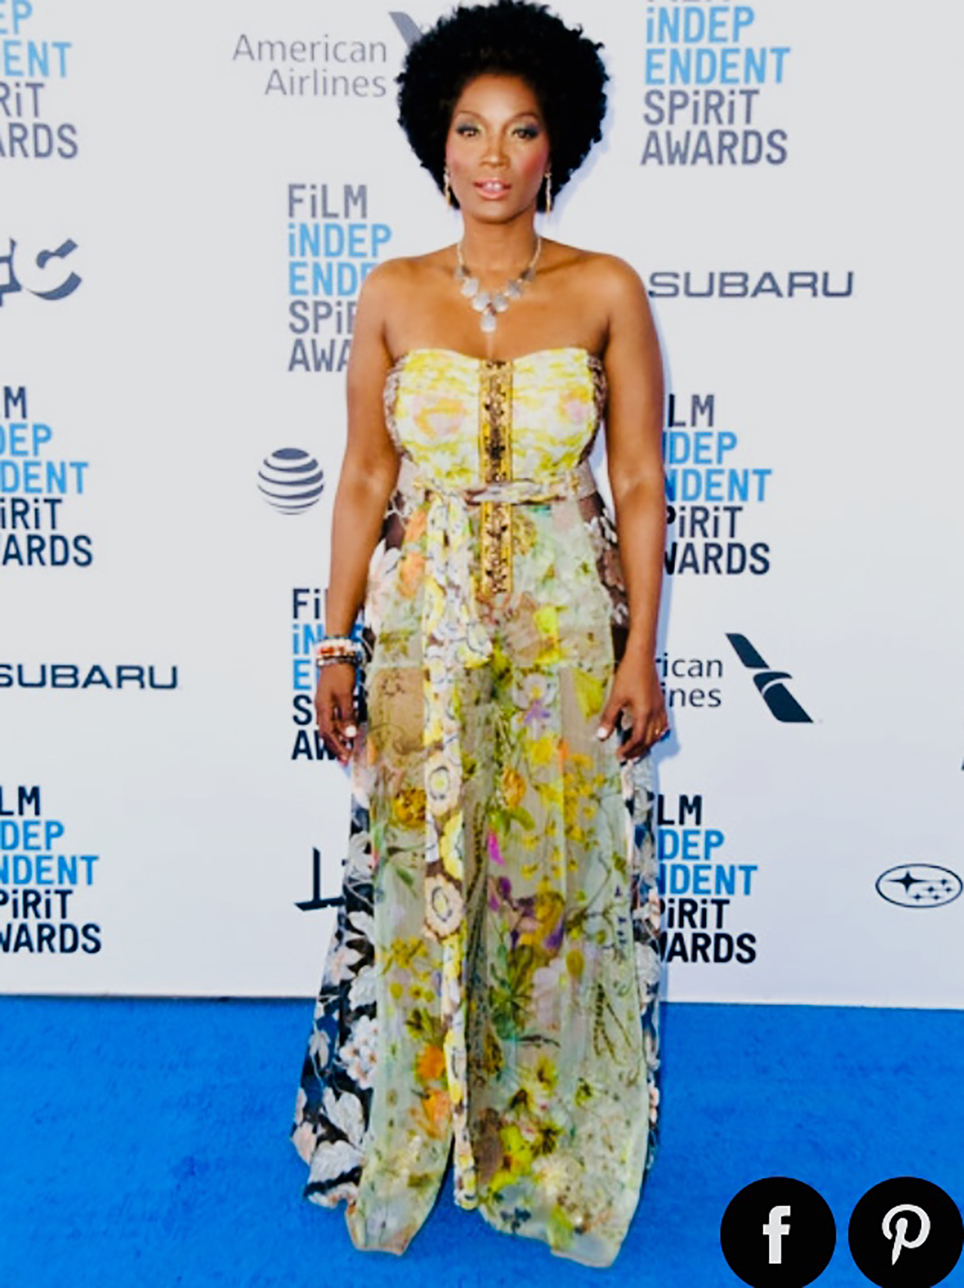 Yolonda-Ross-blue-carpet-Spirit-Awards-2019.jpeg